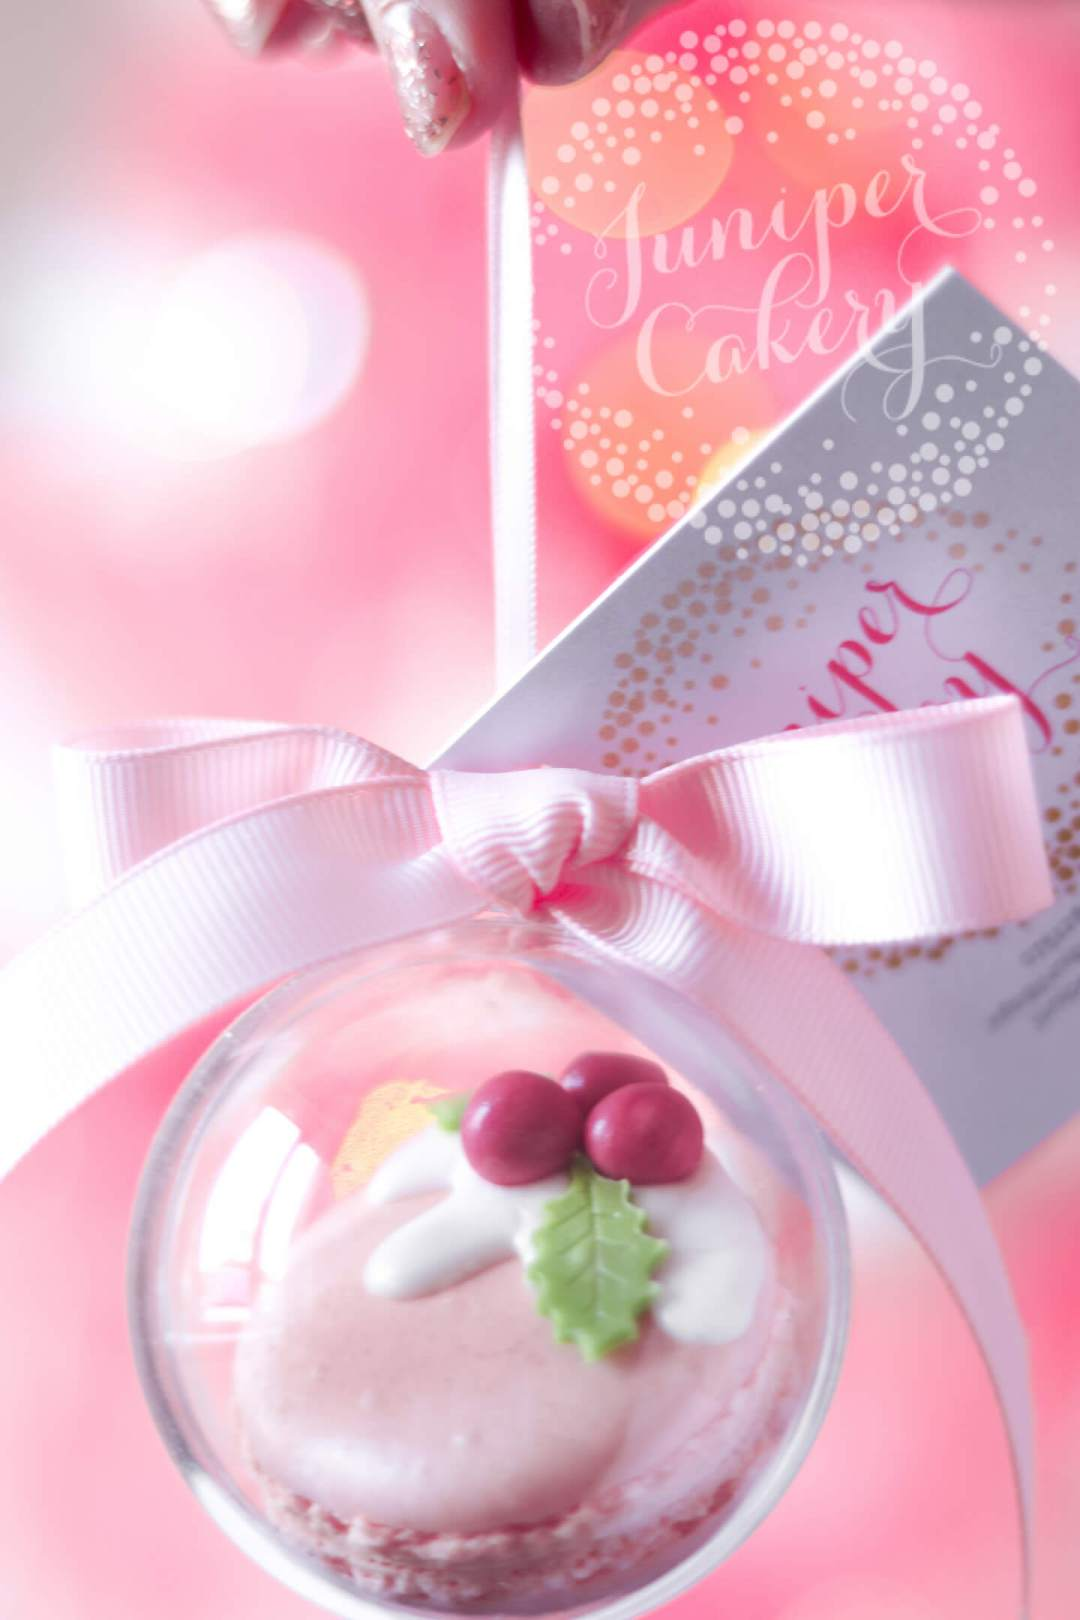 Raspberry Pink Gin macaron bauble by Juniper Cakery